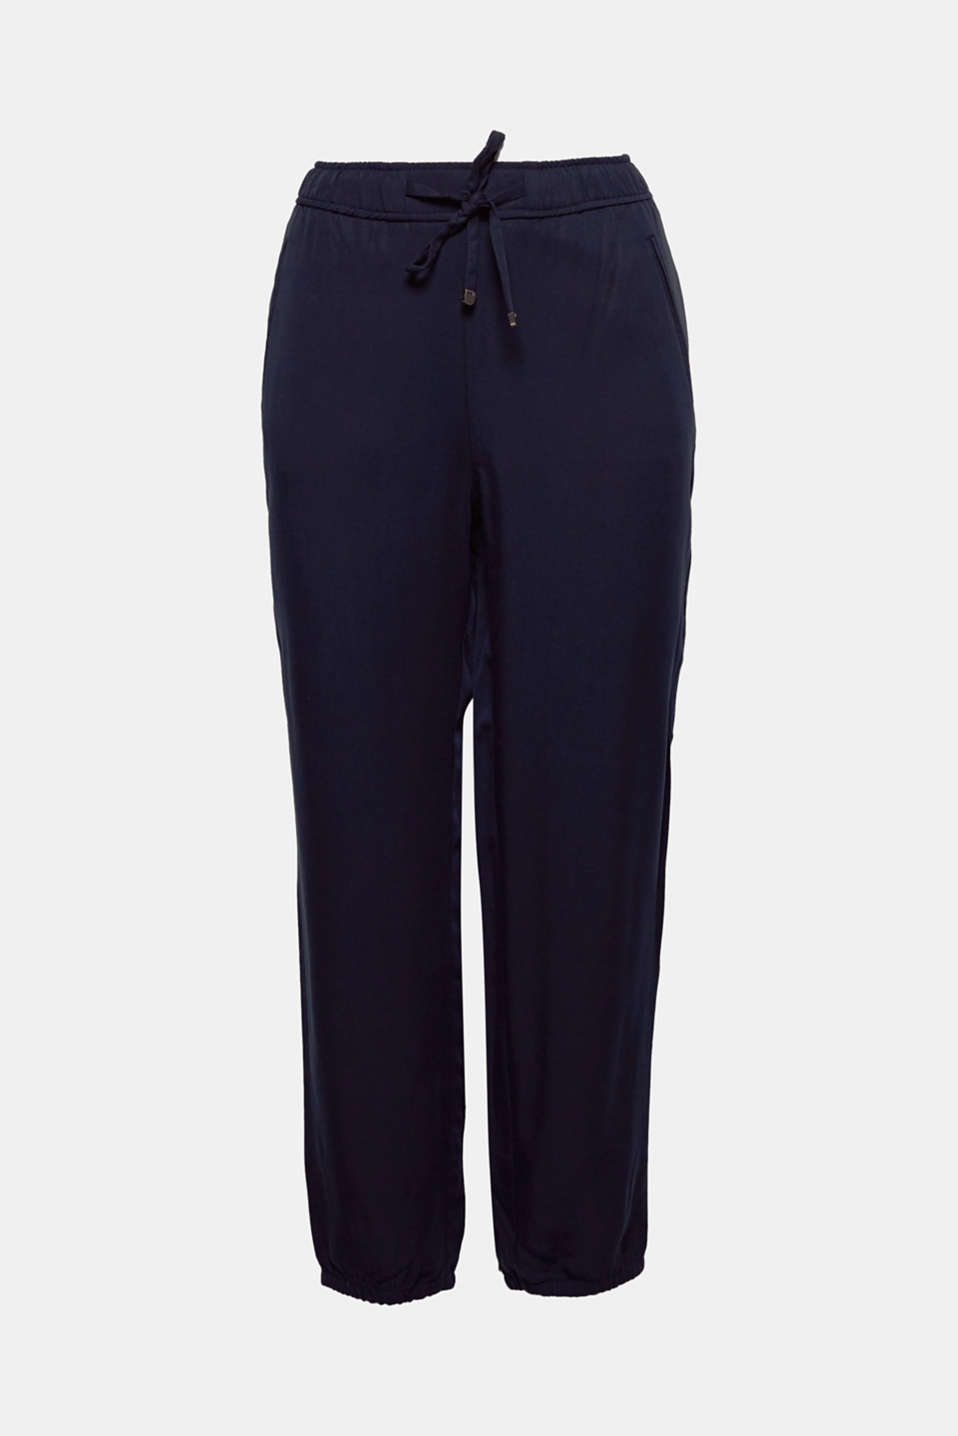 These softly draped lyocell trousers in a relaxed tracksuit-bottoms style unite a high level of comfort with fashionable appeal.